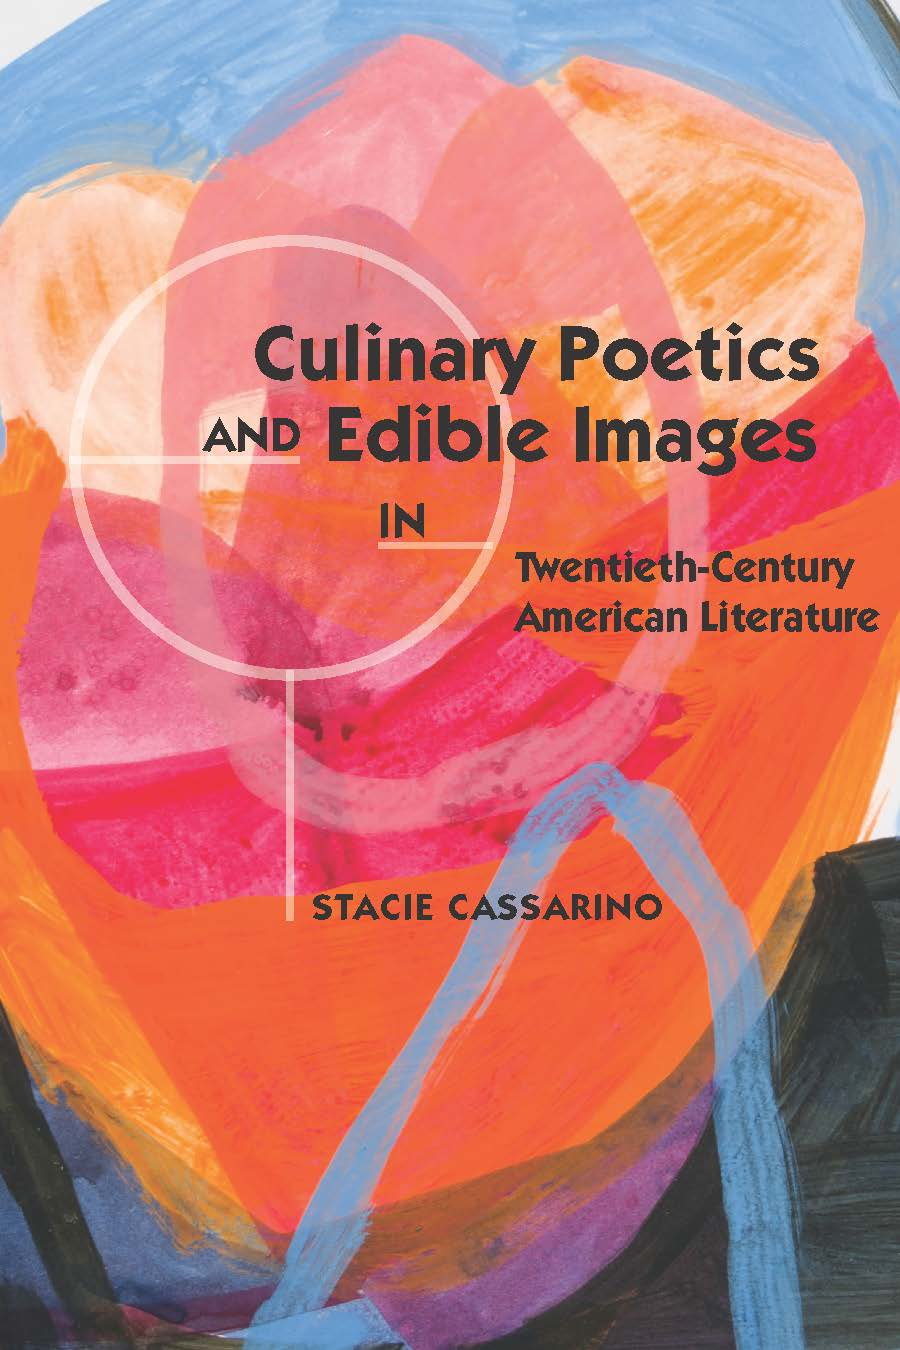 Culinary Poetics And Edible Images In Twentieth-Ce book cover